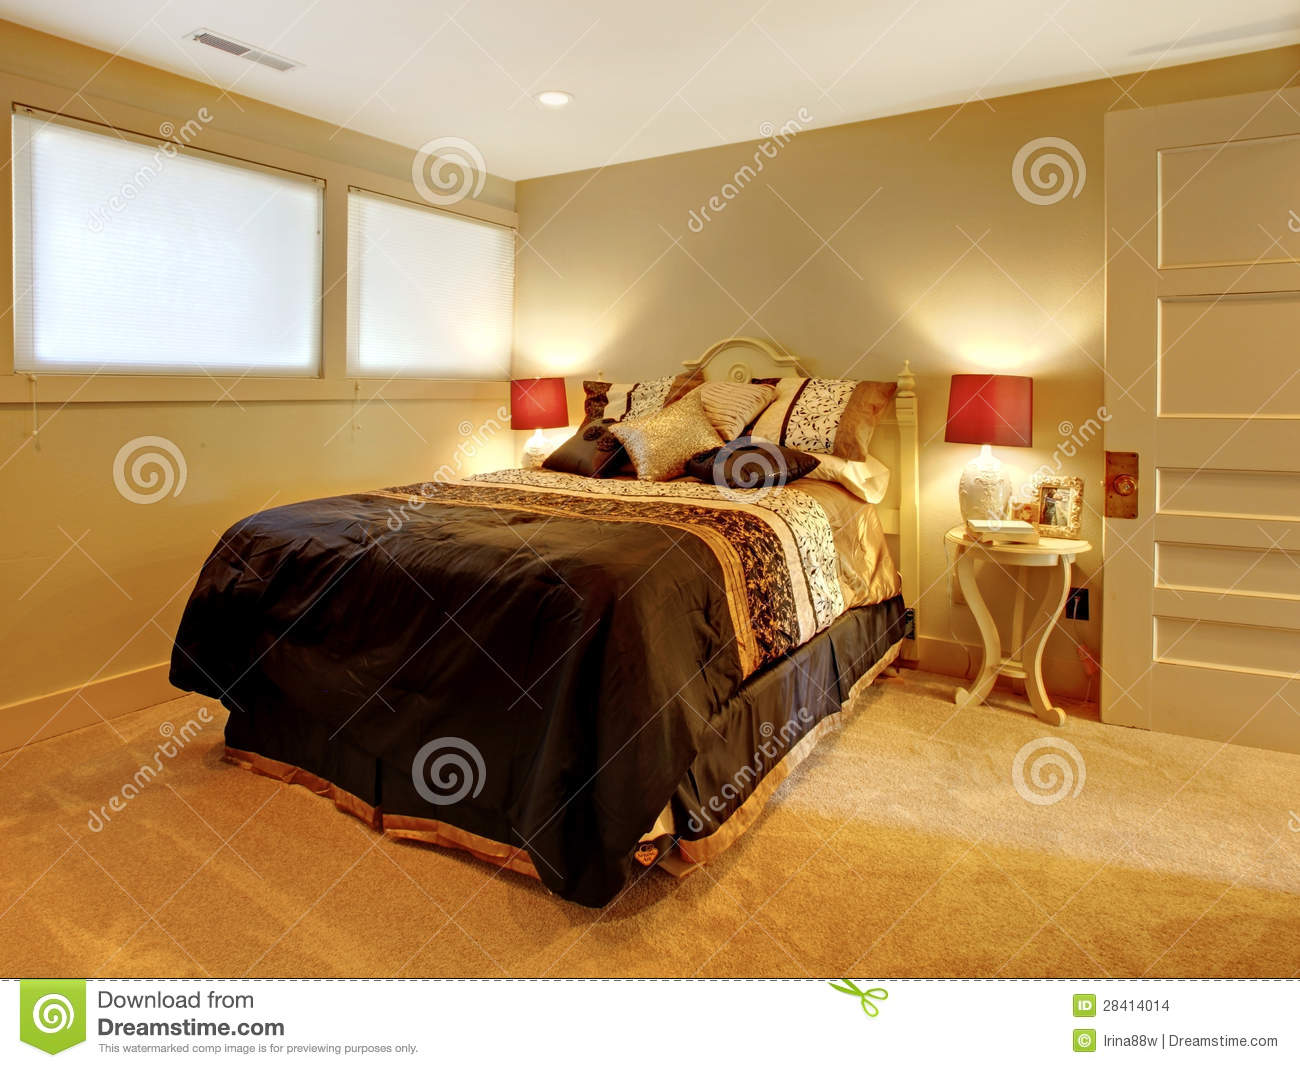 petite chambre coucher de sous sol avec le b ti d 39 invit images stock image 28414014. Black Bedroom Furniture Sets. Home Design Ideas